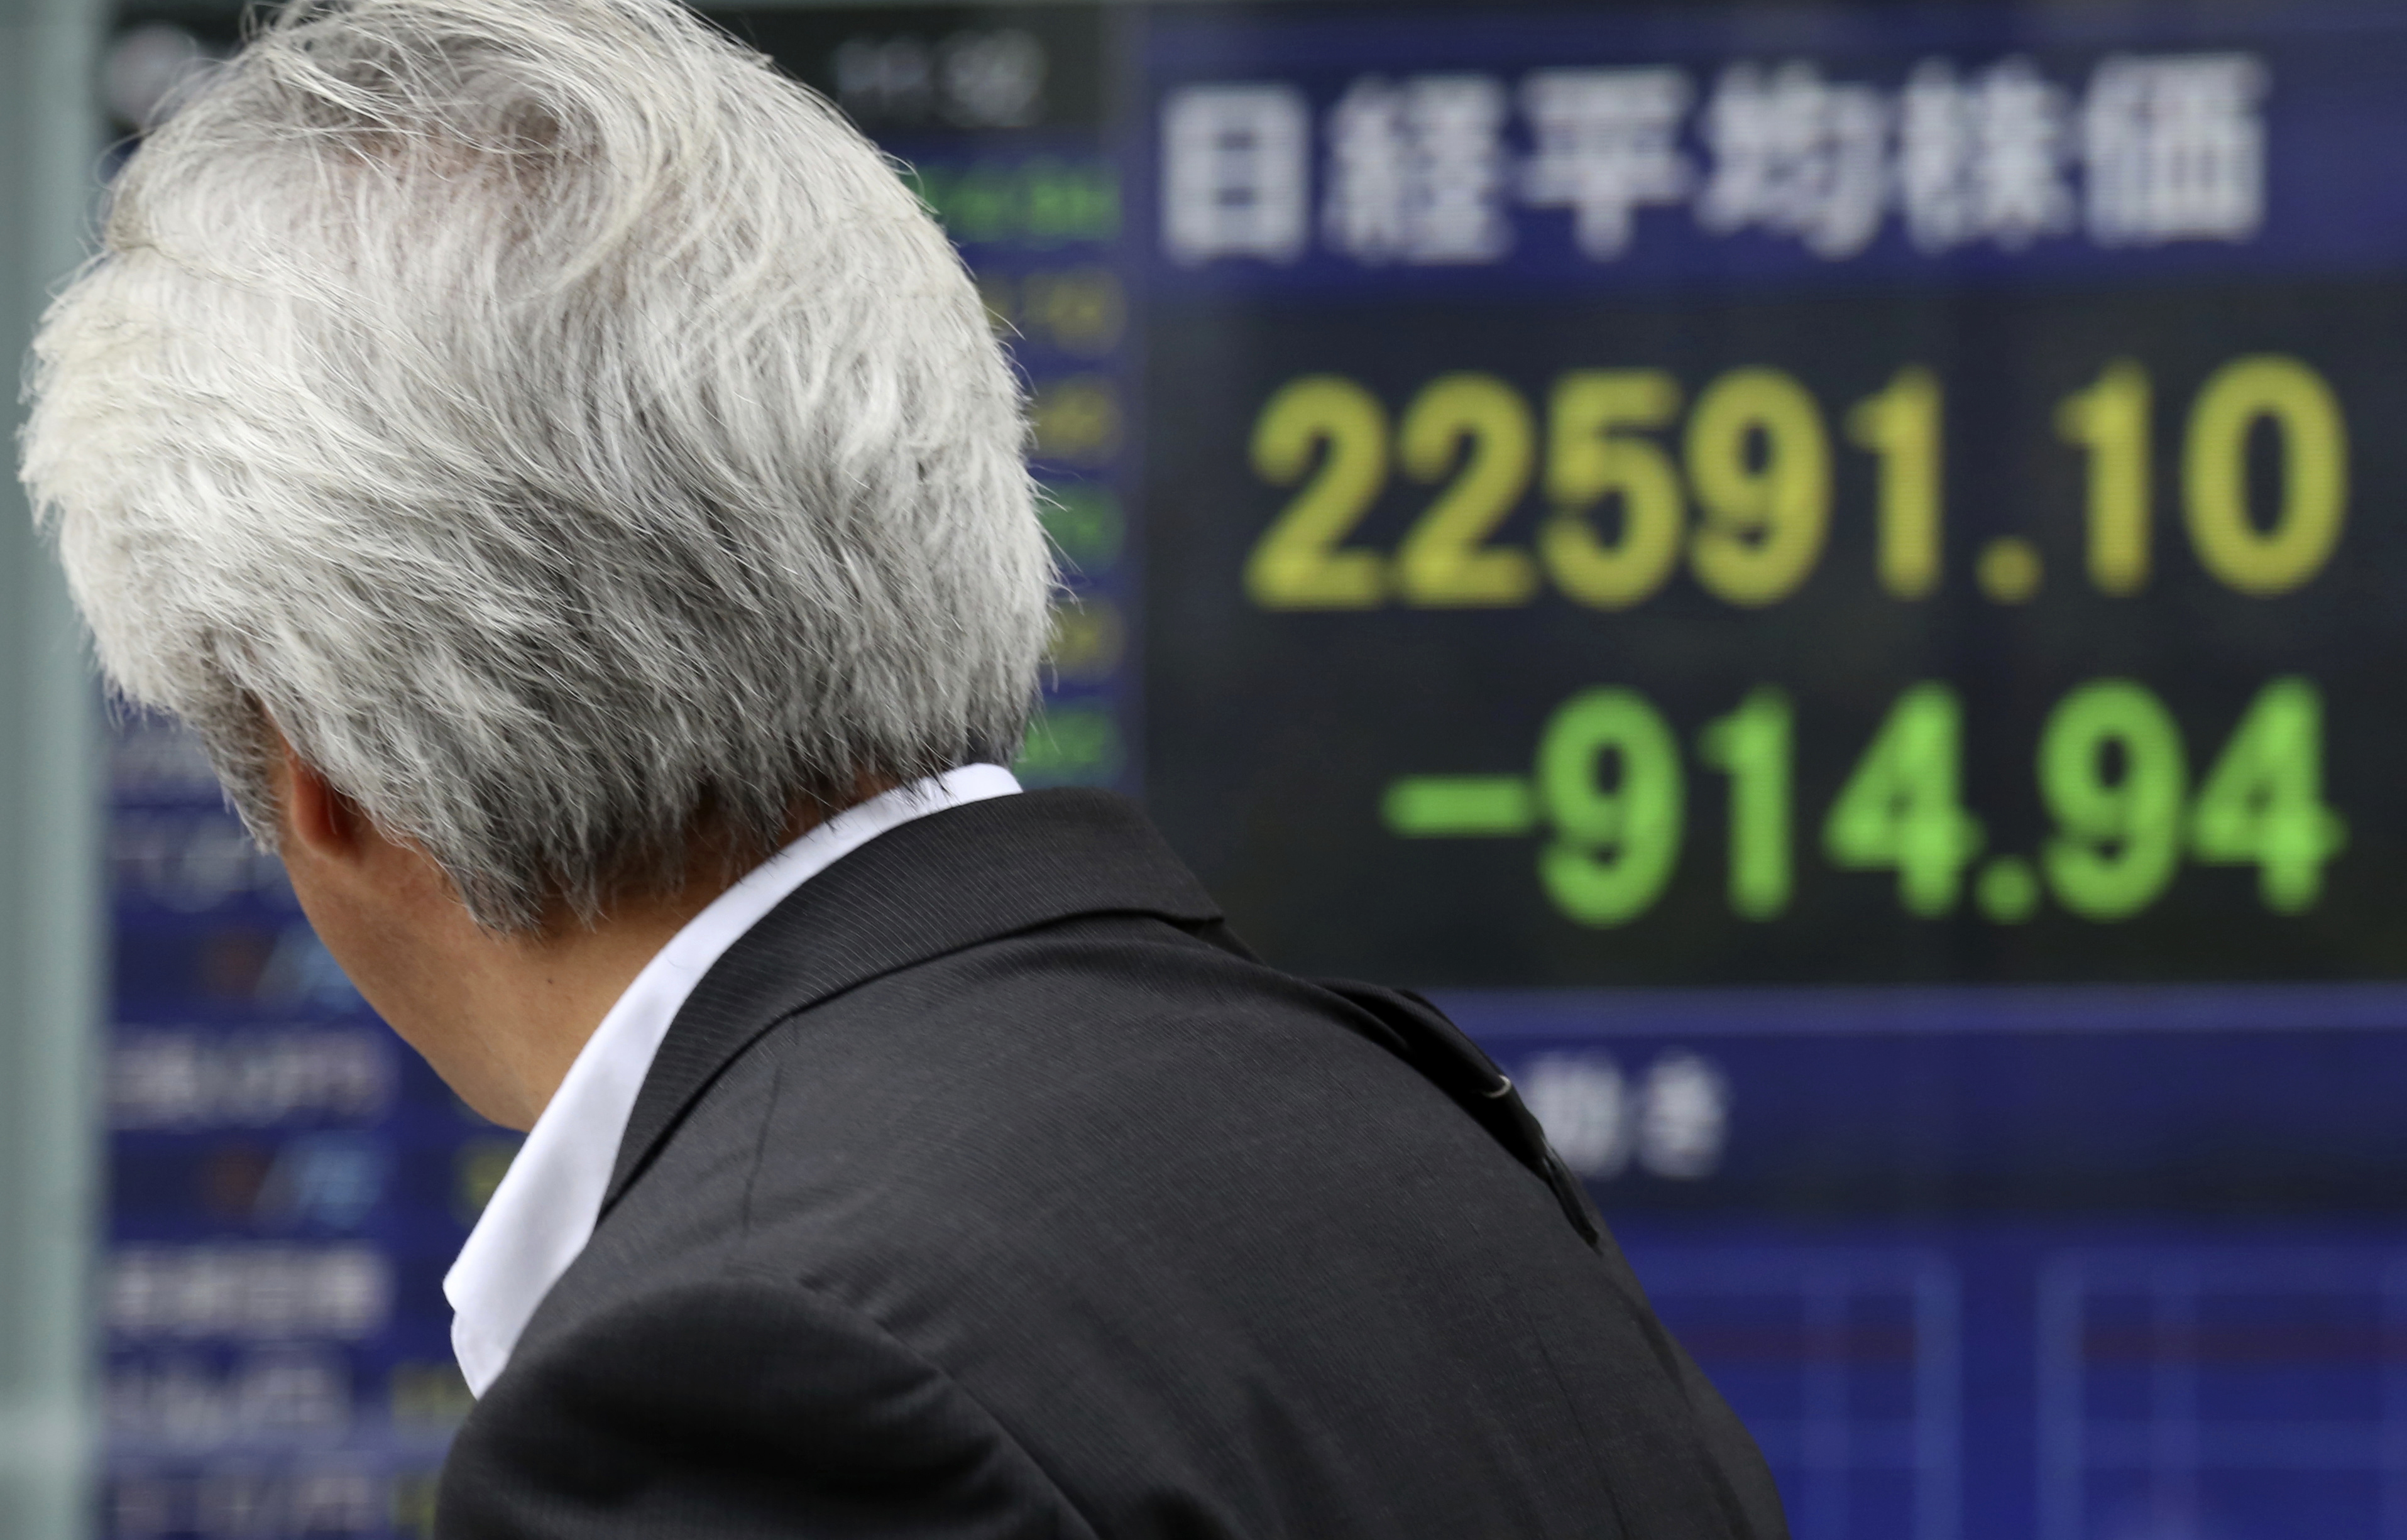 A man looks at an electronic stock board of a securities firm in Tokyo on Thursday. Asian markets tumbled a day after Wall Street slumped on a heavy selling of technology and internet stocks. Japan's benchmark fell by an unusually wide margin of 3.9 percent.